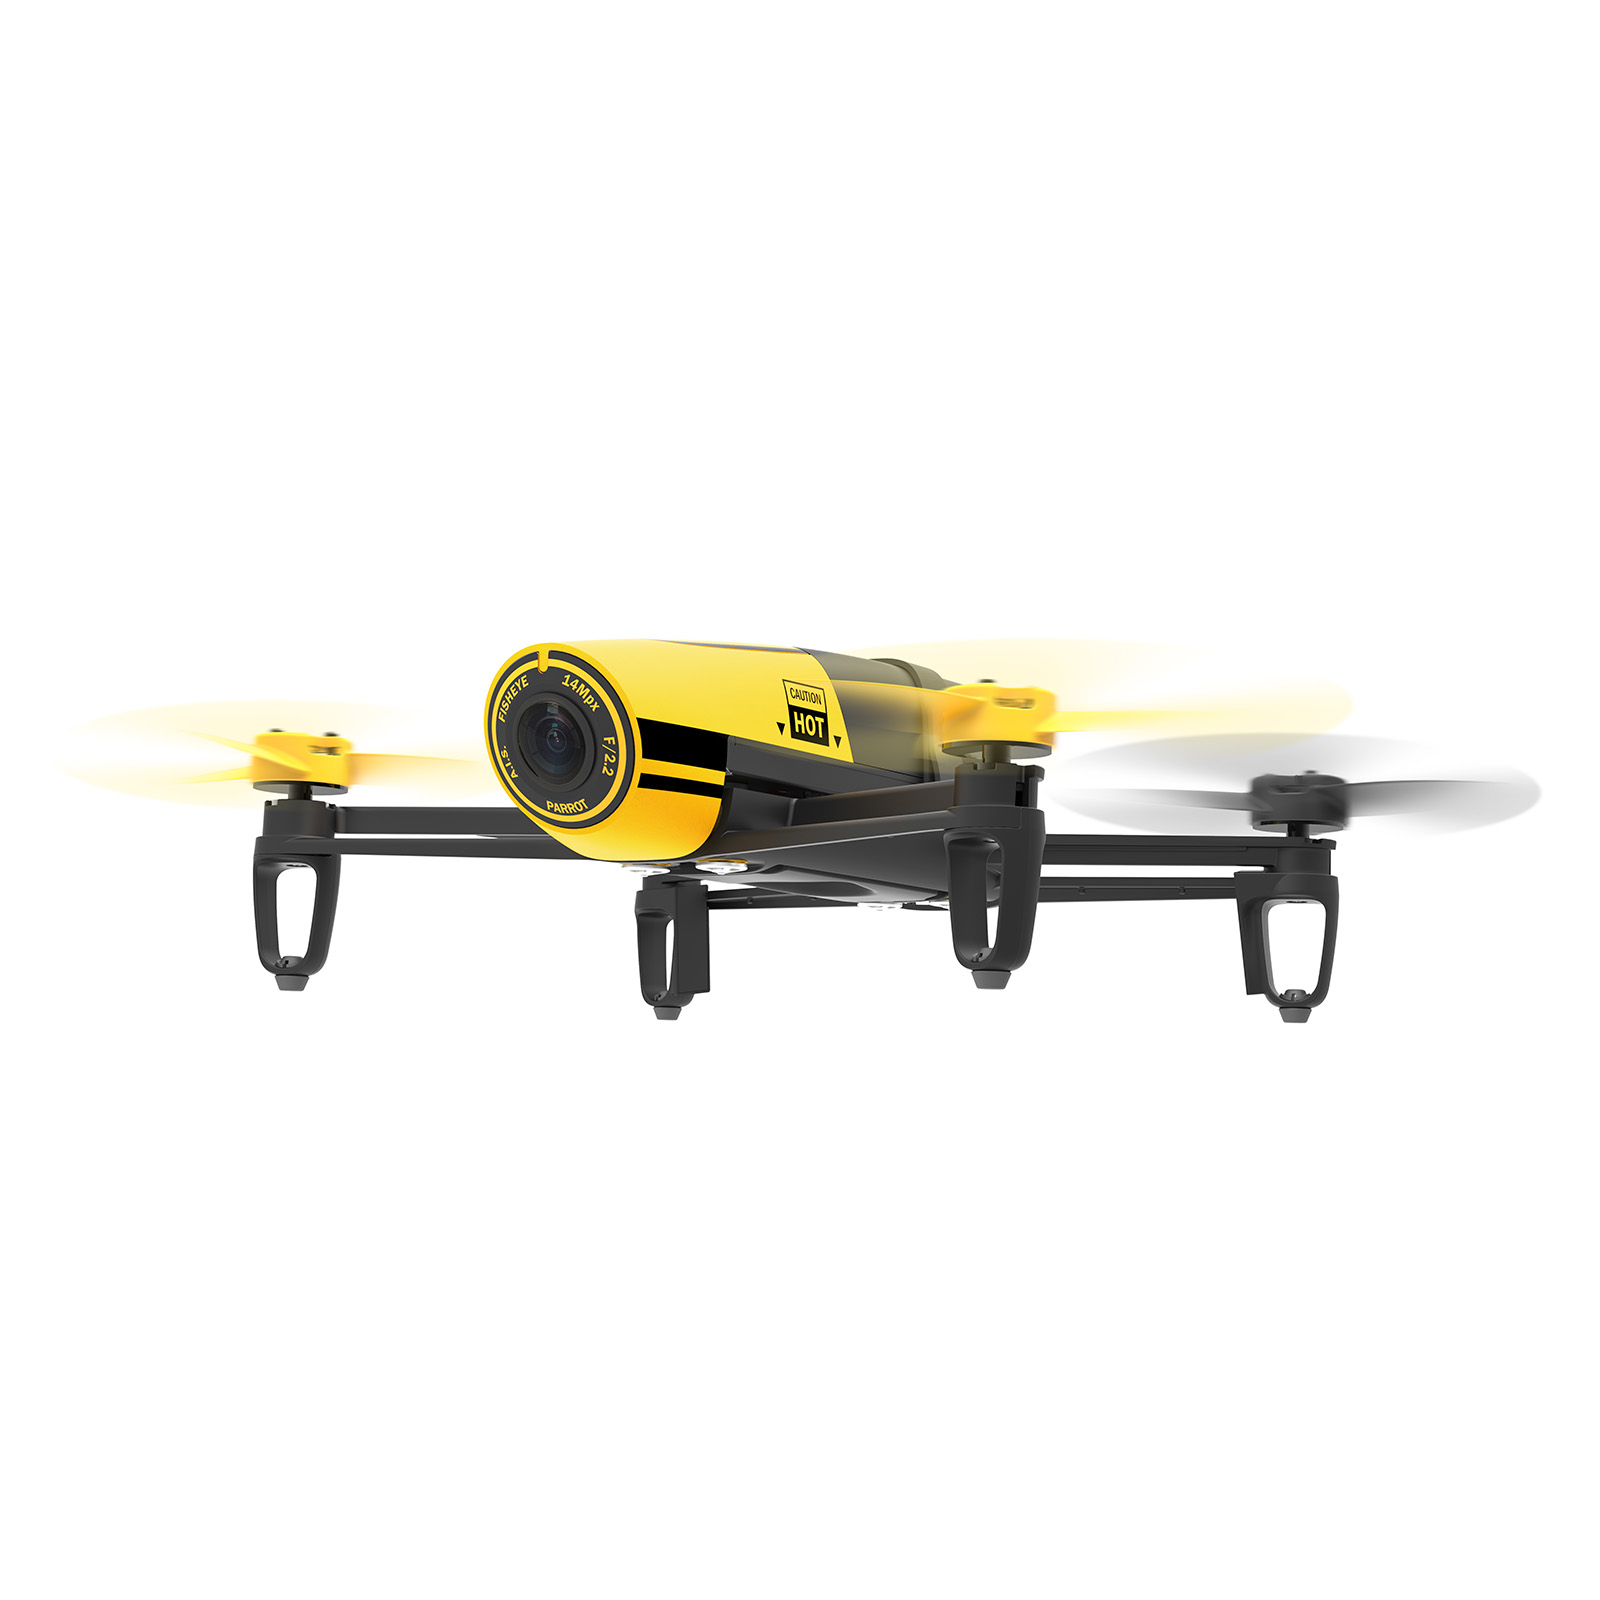 Parrot Bebop Quadcopter Drone with 14MP Full HD 1080p Wide-Angle Camera (Certified... by Parrot